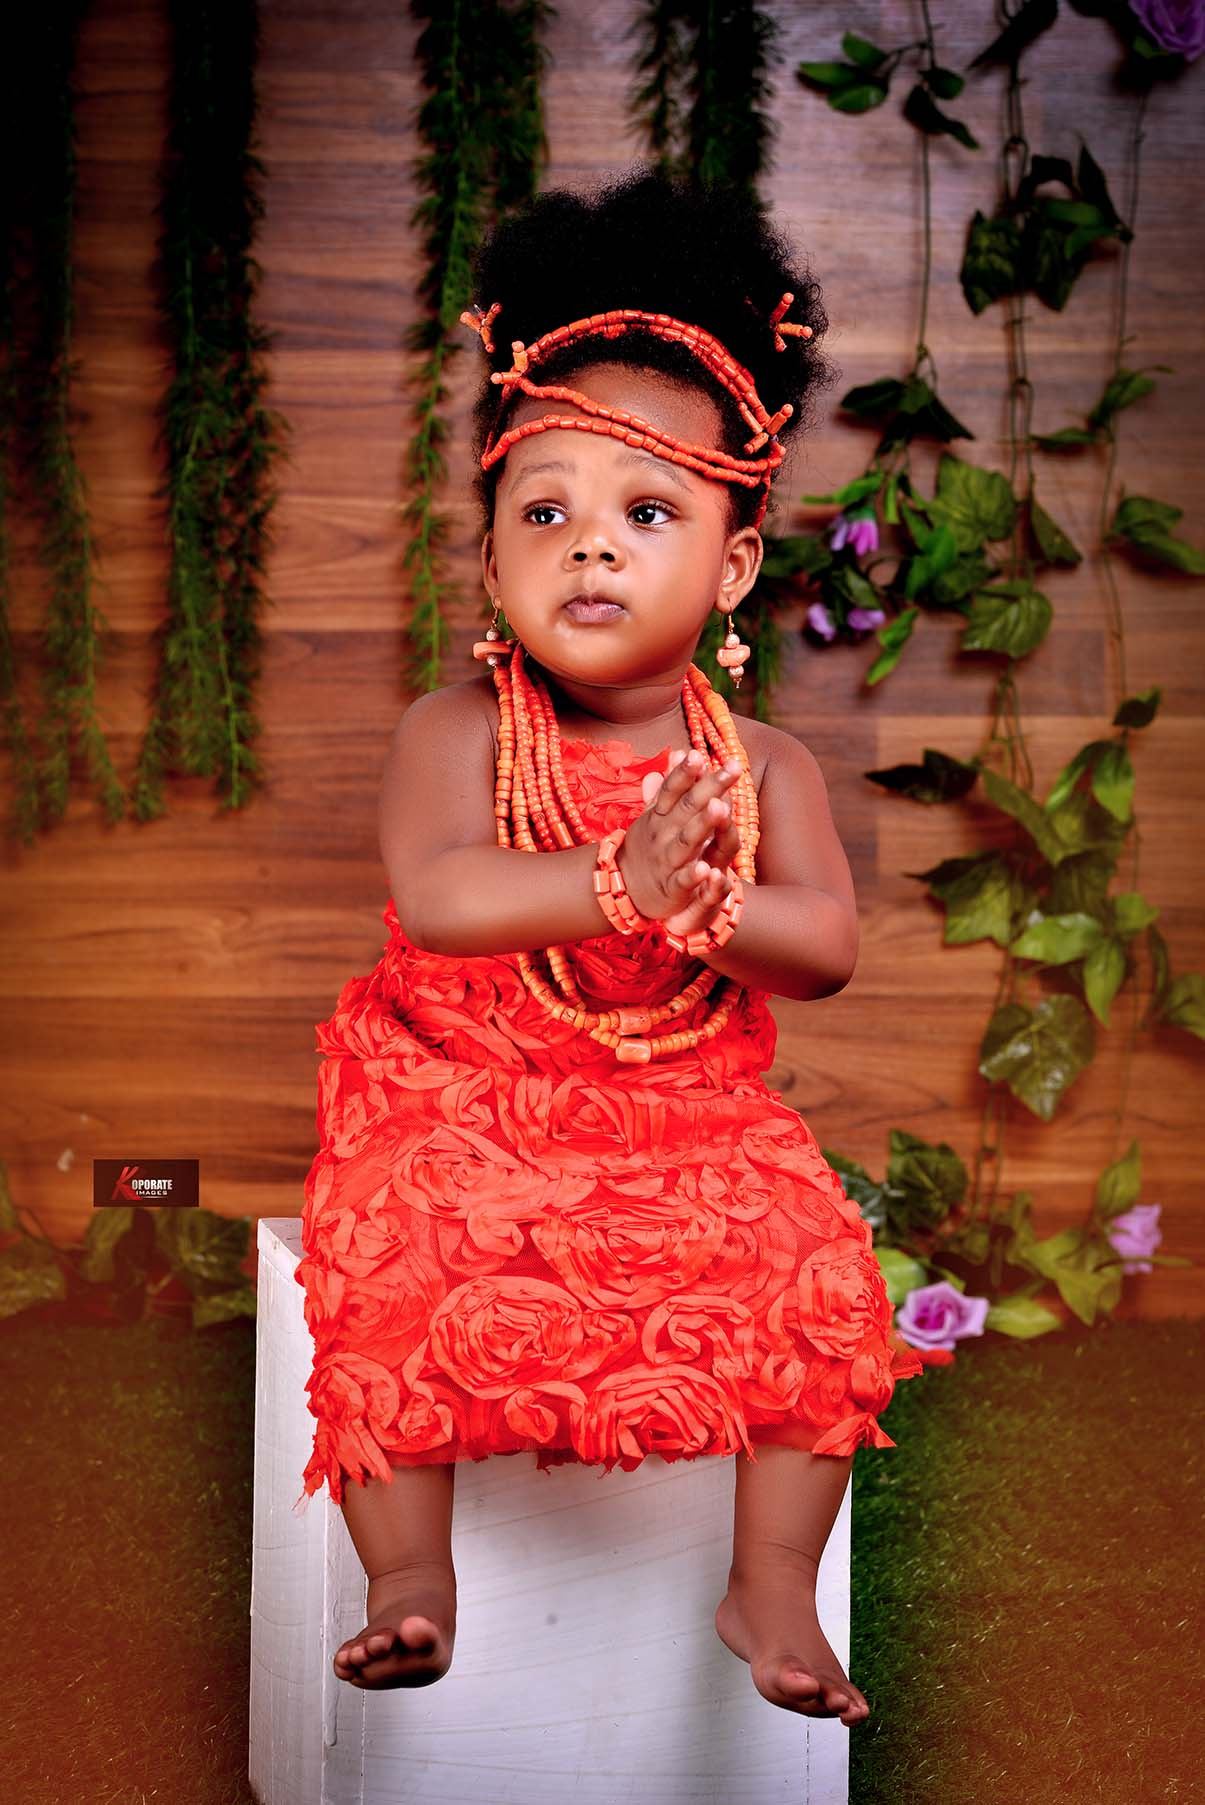 Baby/kids photography wedding photos|Koporate Images|Photography & Video Coverage studio in Benin City|Professional Photographers for your events|Nigerian Wedding Photographer in Benin City|Edo Brides, benin brides